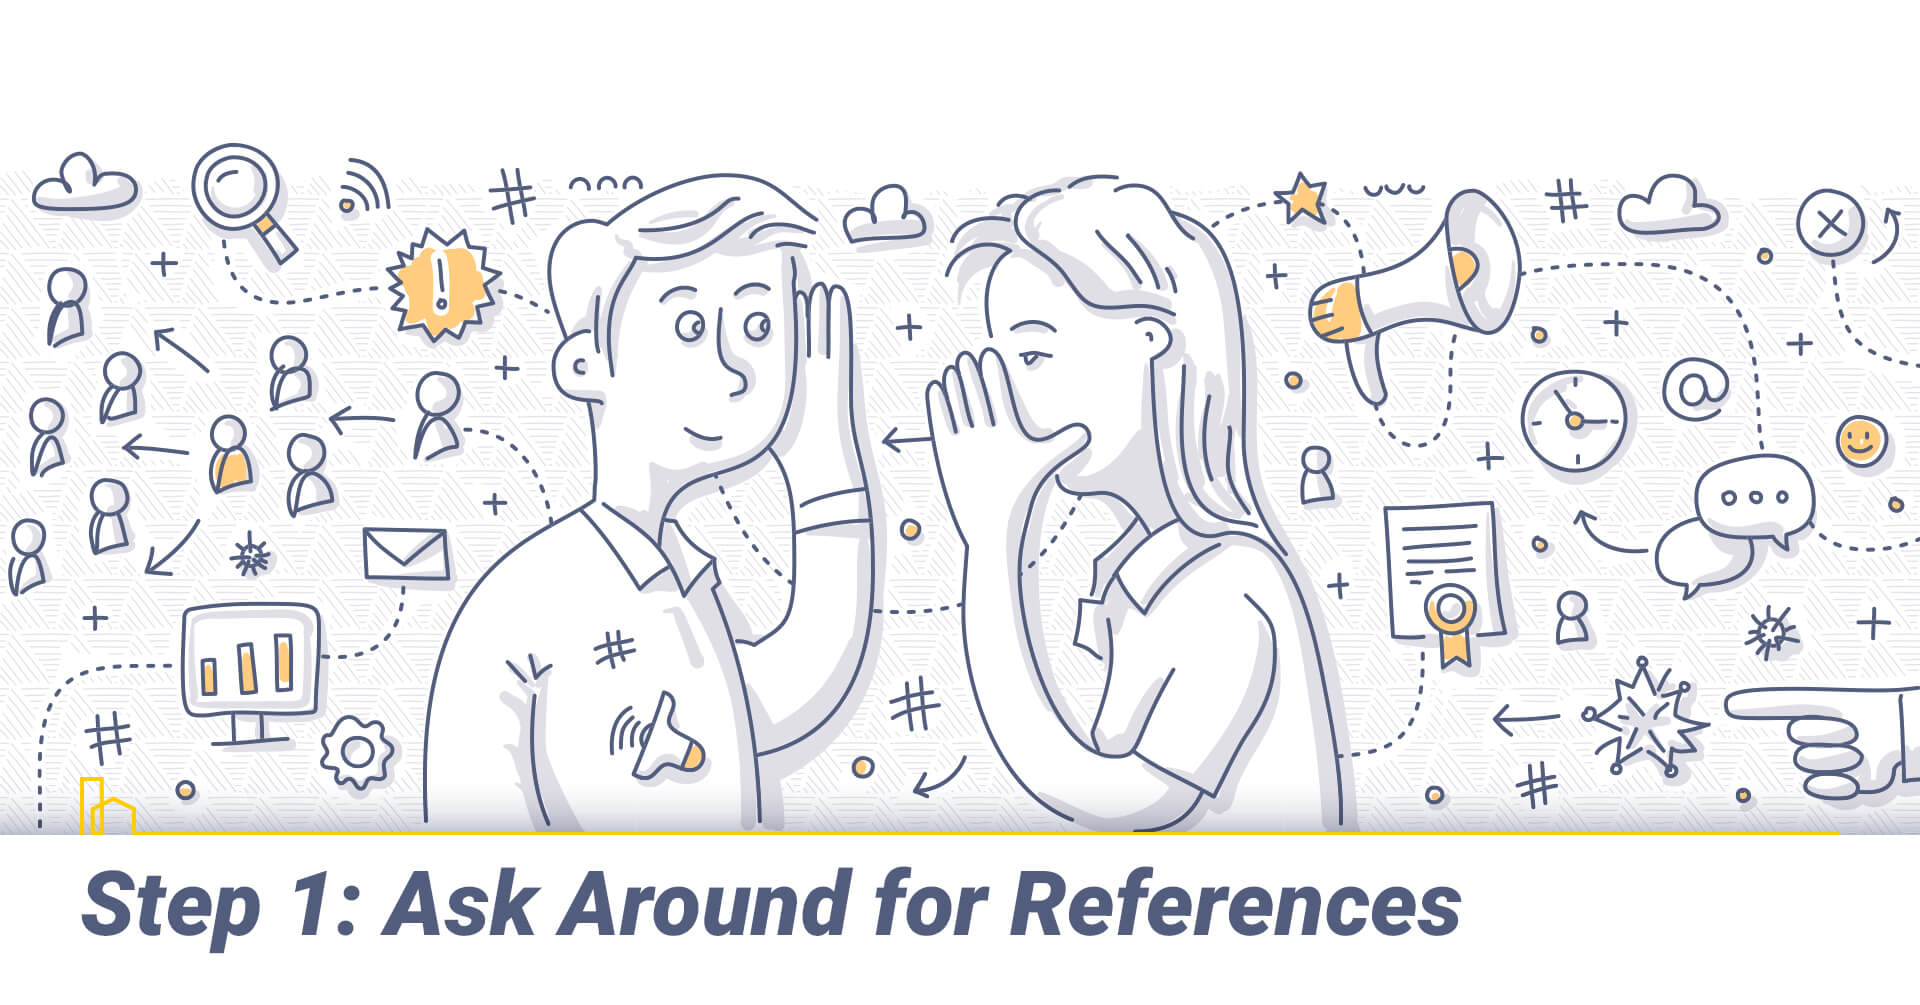 Step 1: Ask Around for References